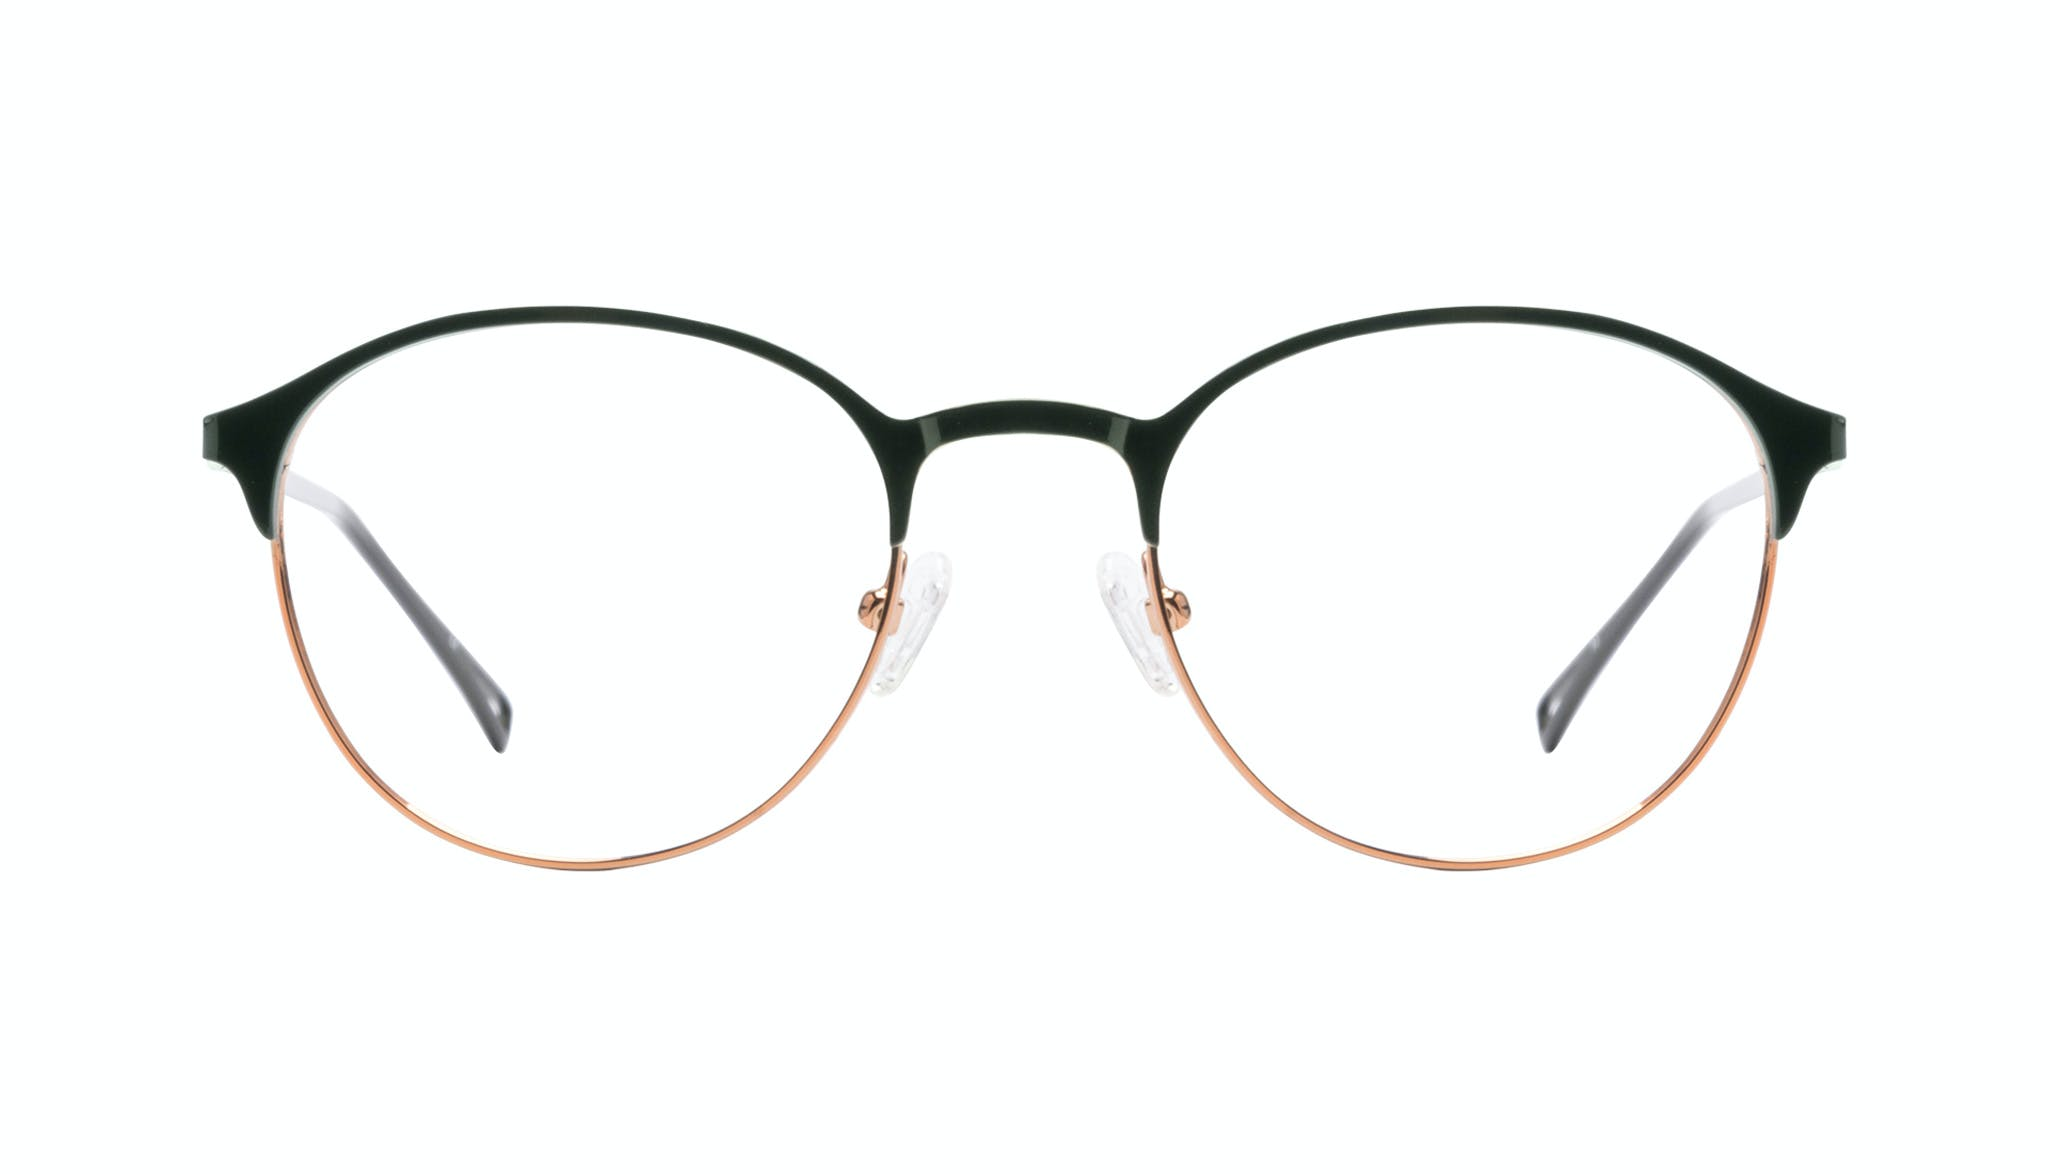 Affordable Fashion Glasses Round Eyeglasses Women Bay Emeraude Front